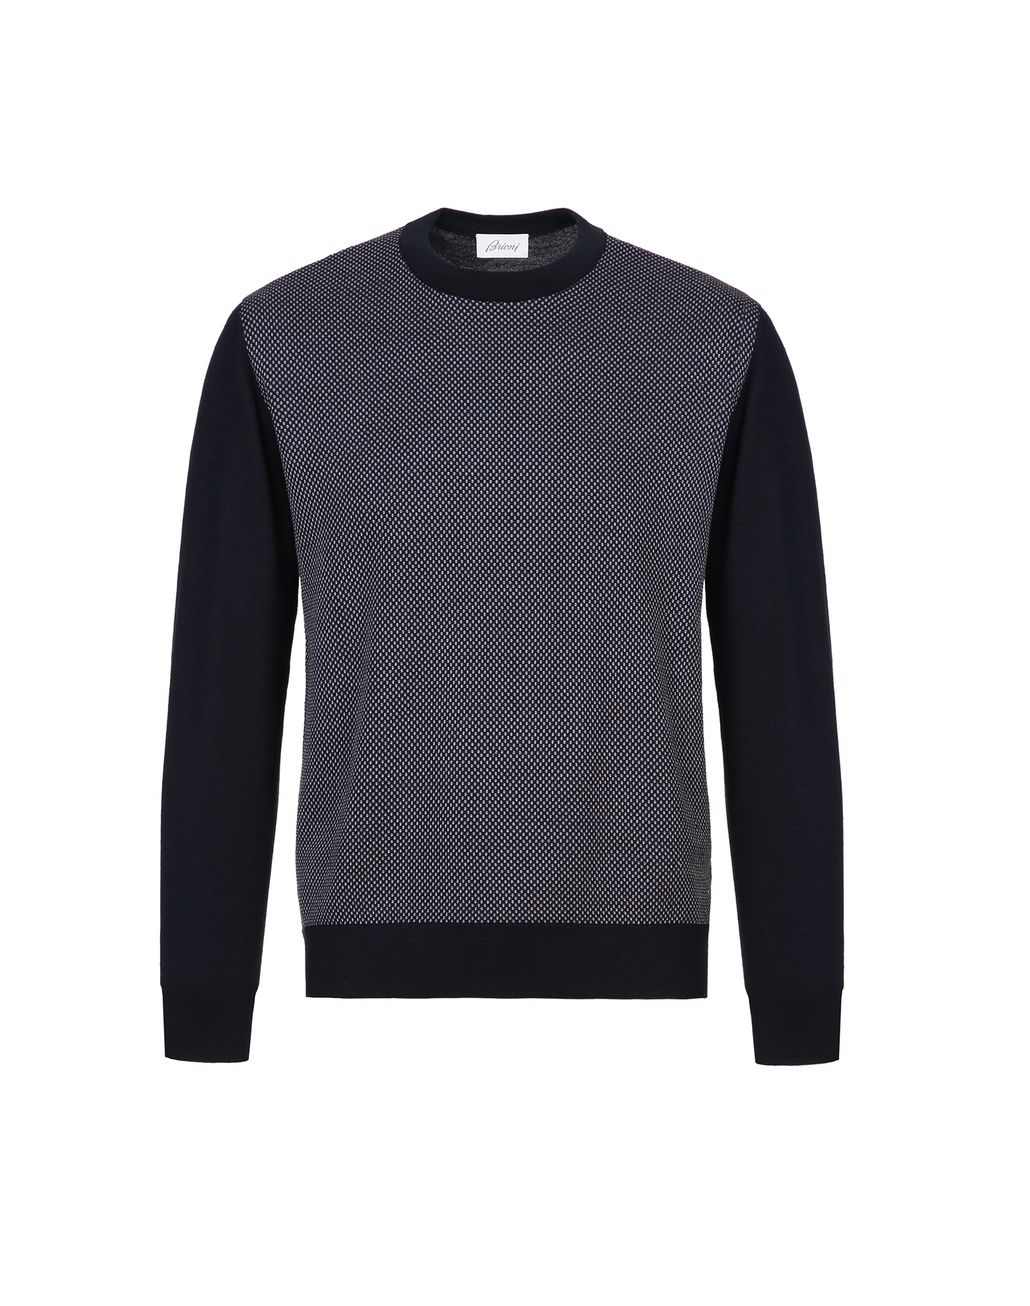 BRIONI Navy Blue and Bordeaux Crew Neck Sweater  Knitwear [*** pickupInStoreShippingNotGuaranteed_info ***] f